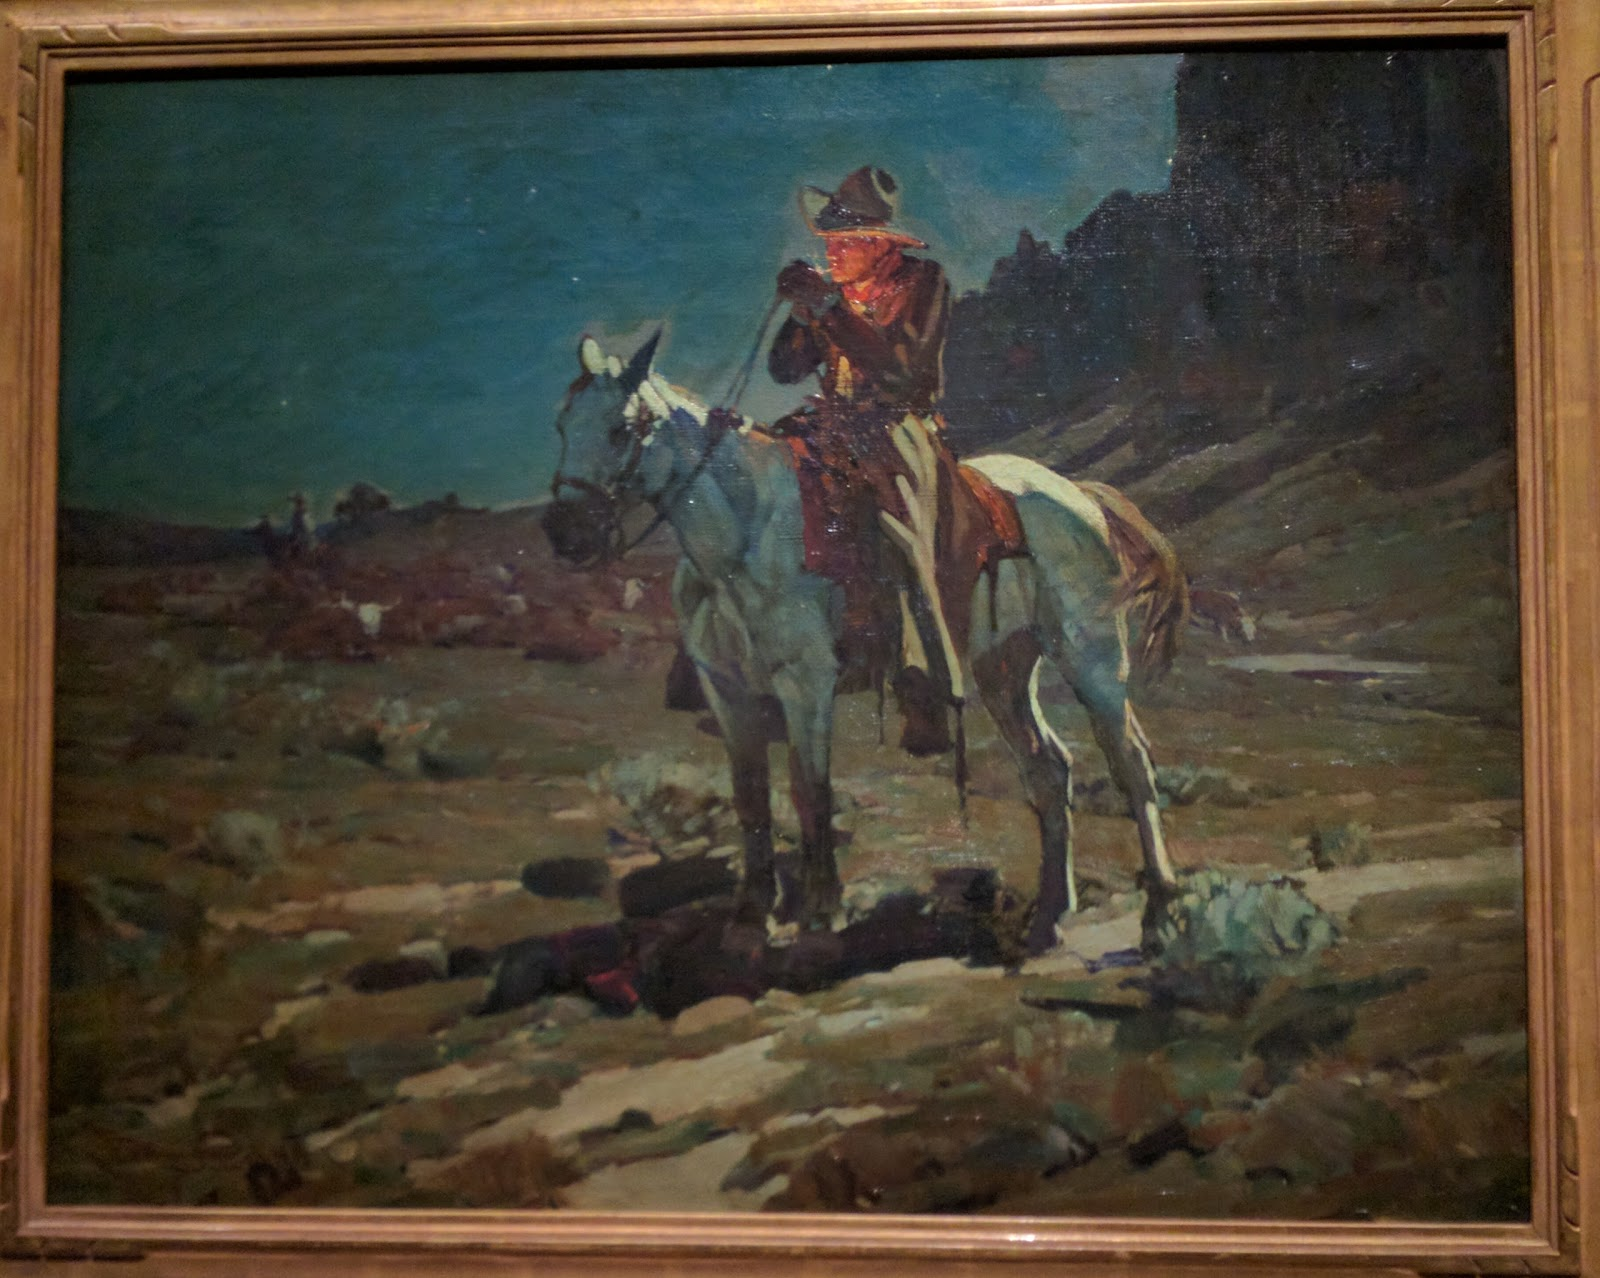 sadly i don t know the name of the painting or the artist i ve checked my records and the museum s please let me know if you discover either